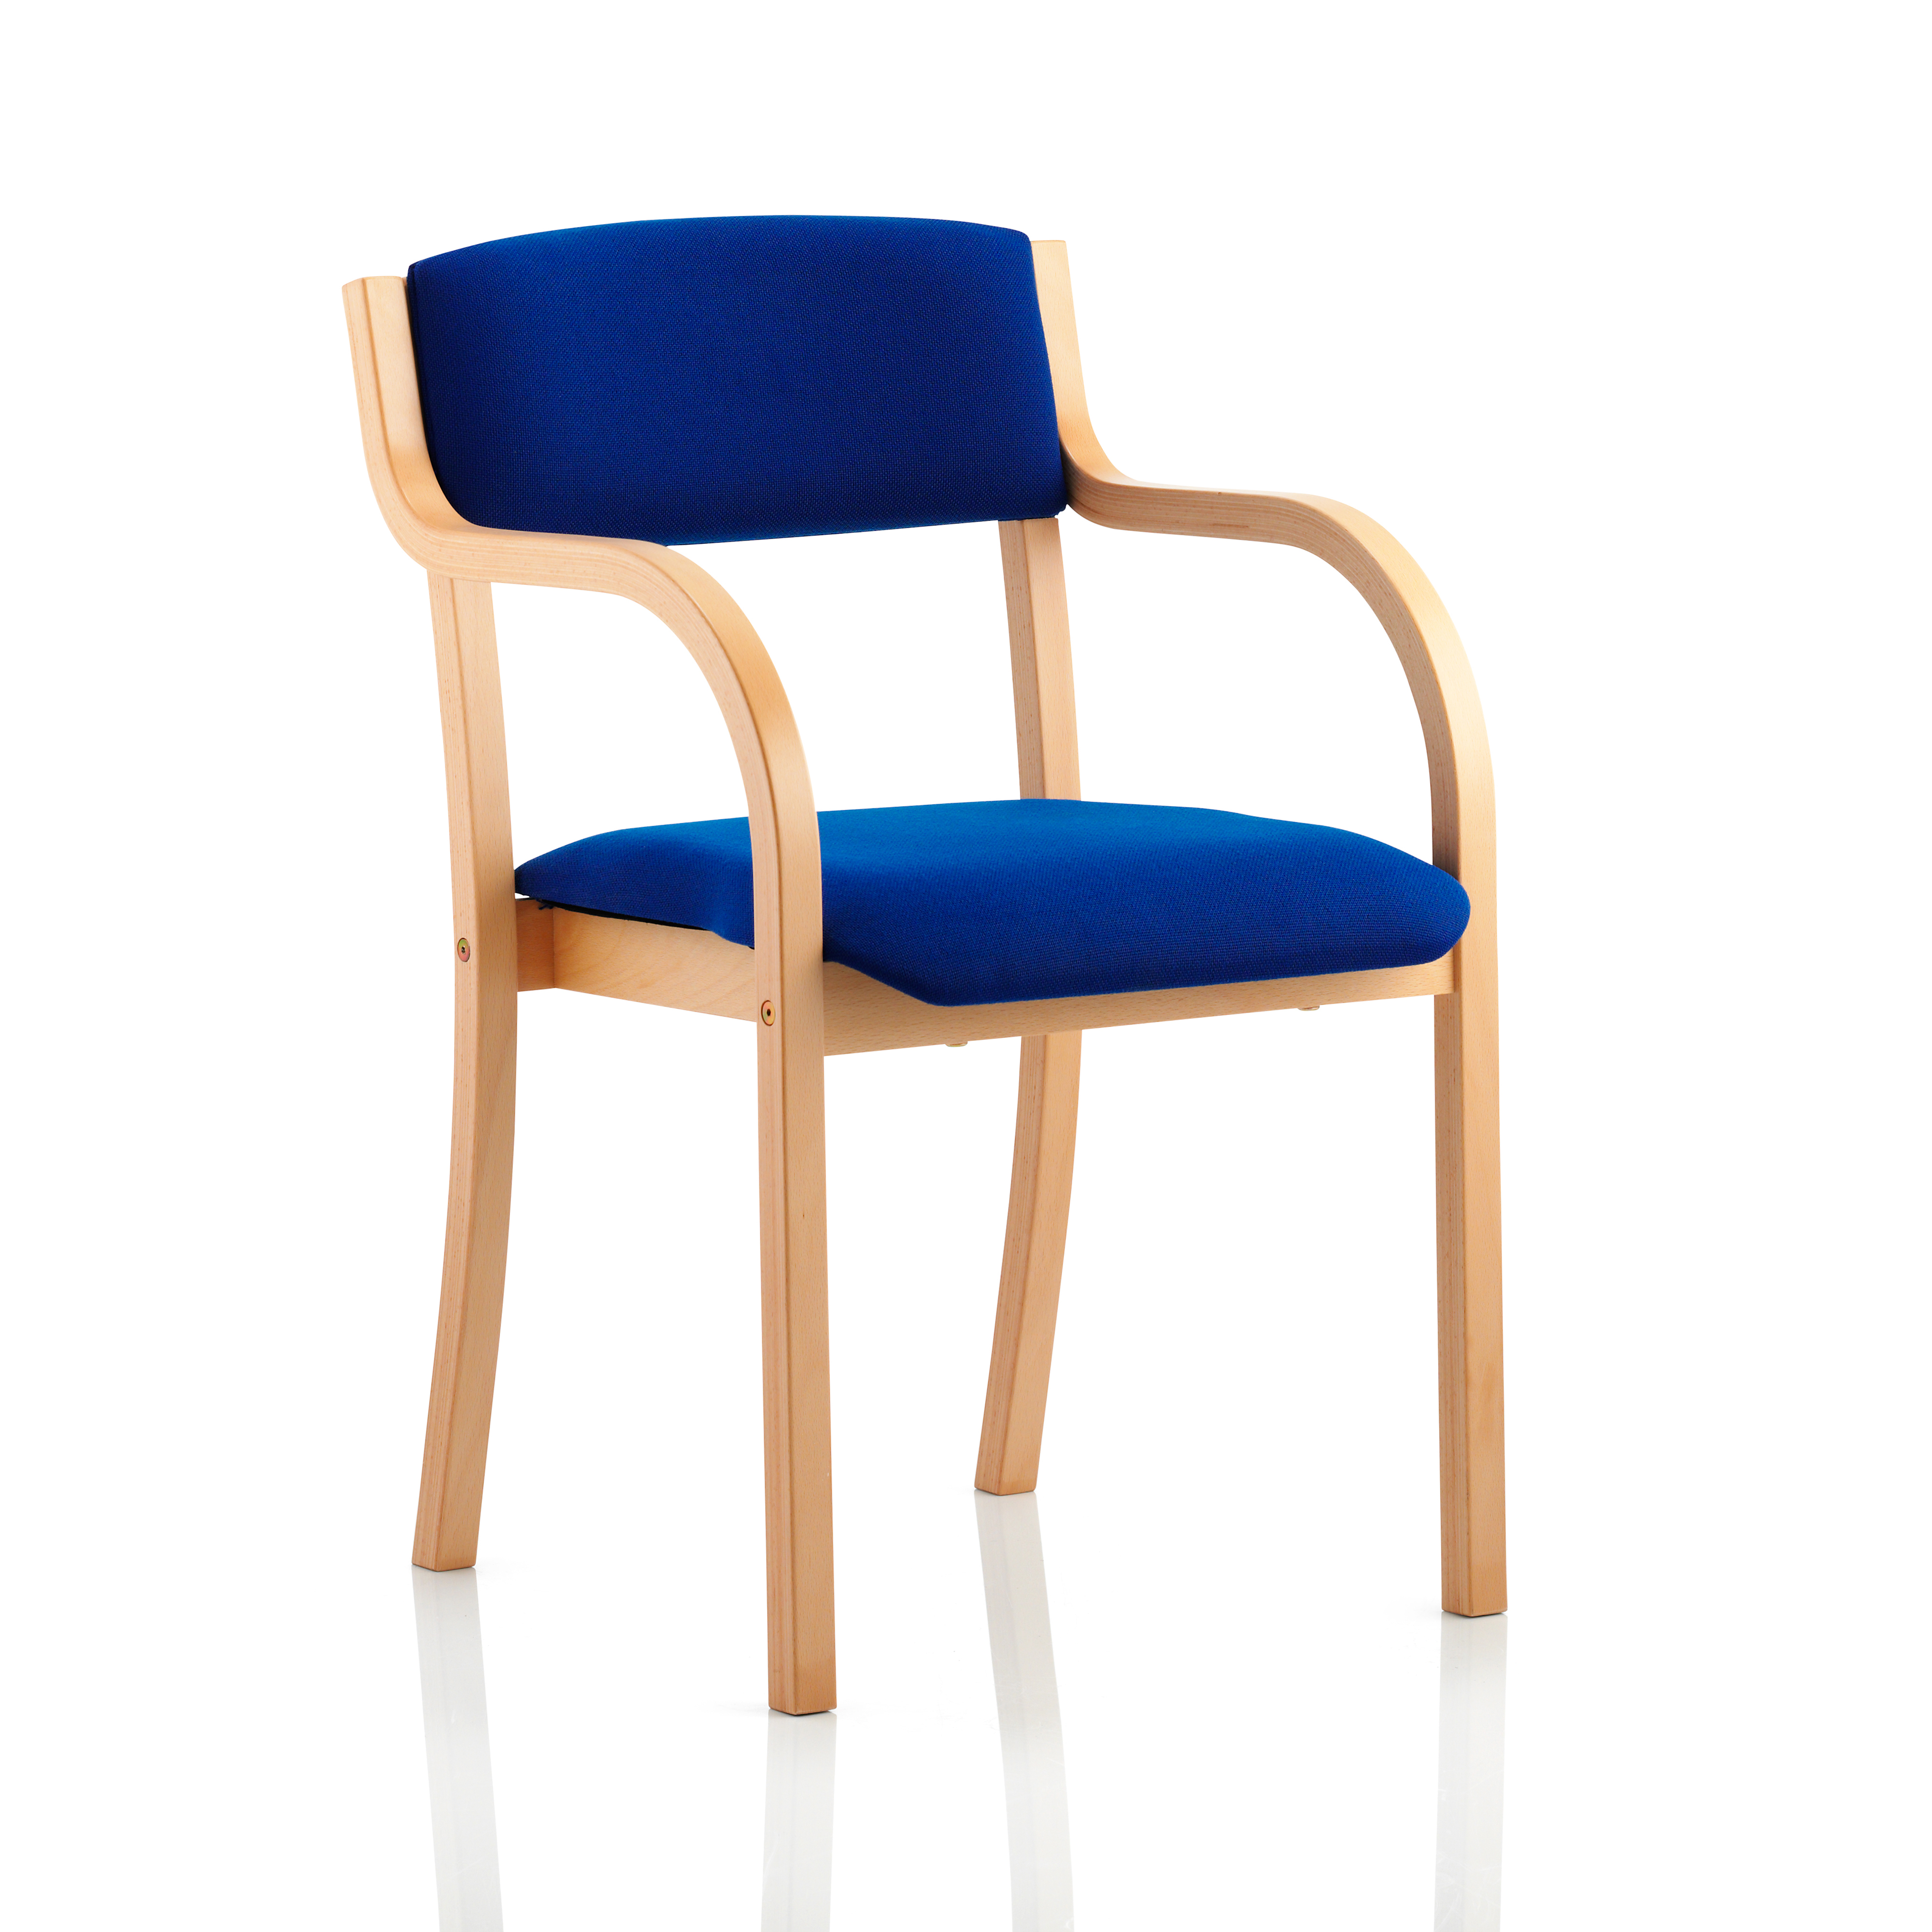 Trexus Wood Frame Conference Chair With Arms Blue 450x490x450mm Ref BR000085